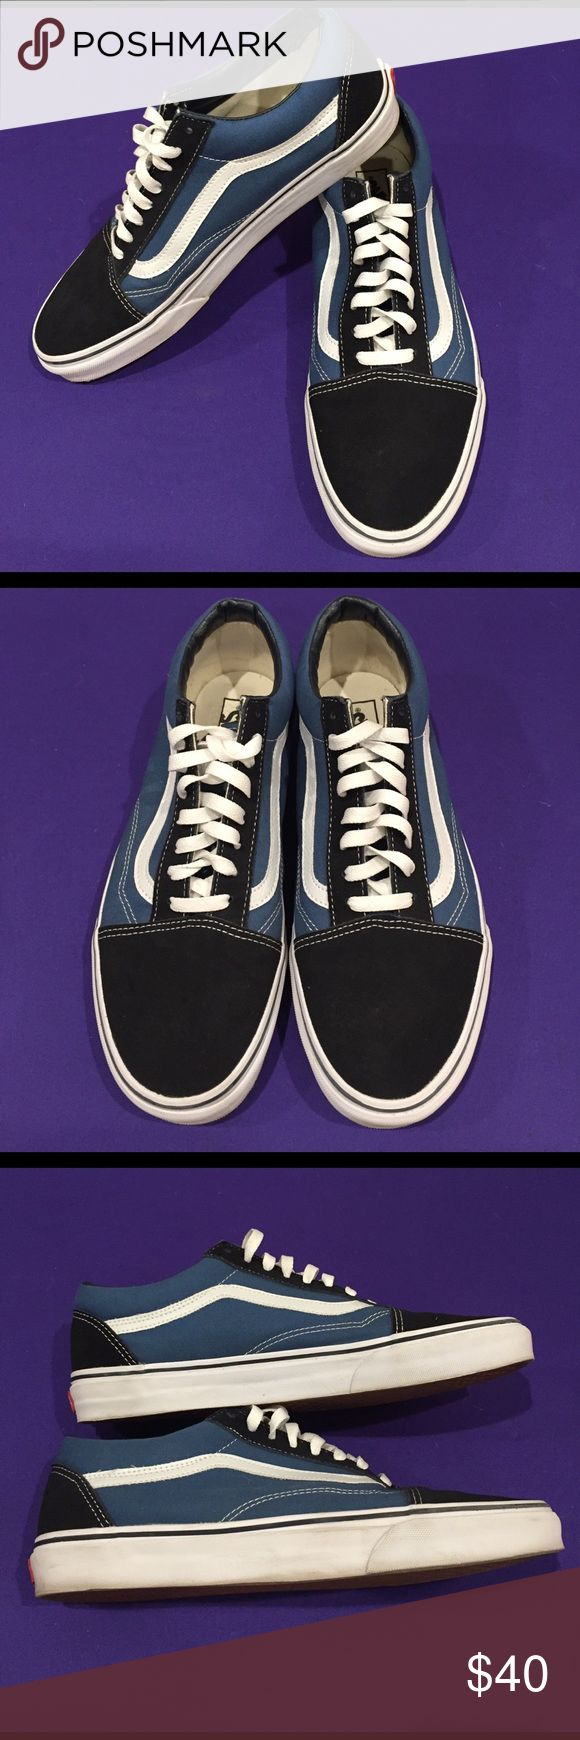 Vans Old Skool Low Top Blue & White Classic Vans Old Skool (School) men's sneakers. Blue canvas sides, white leather stripe, navy suede heal and toe. Pristine, like new condition (worn twice). Not stinky. Men's size 12. Vans Shoes Athletic Shoes